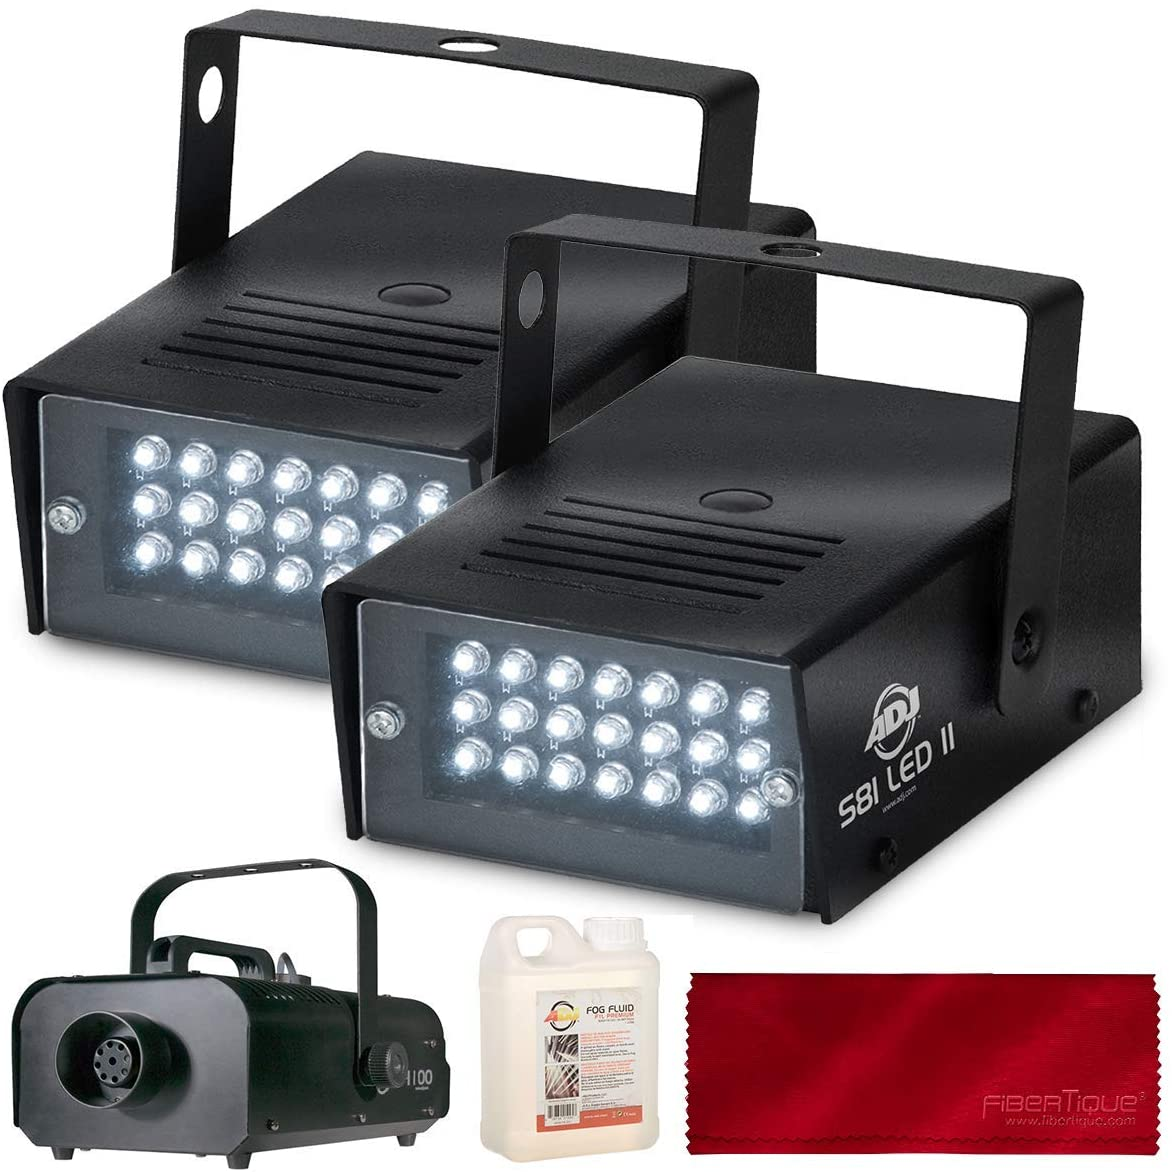 American Dj S81 Variable Speed Led Powered Led Mini Strobe Effect Complete DJ/Event Party Club Bar Light and Fog Set